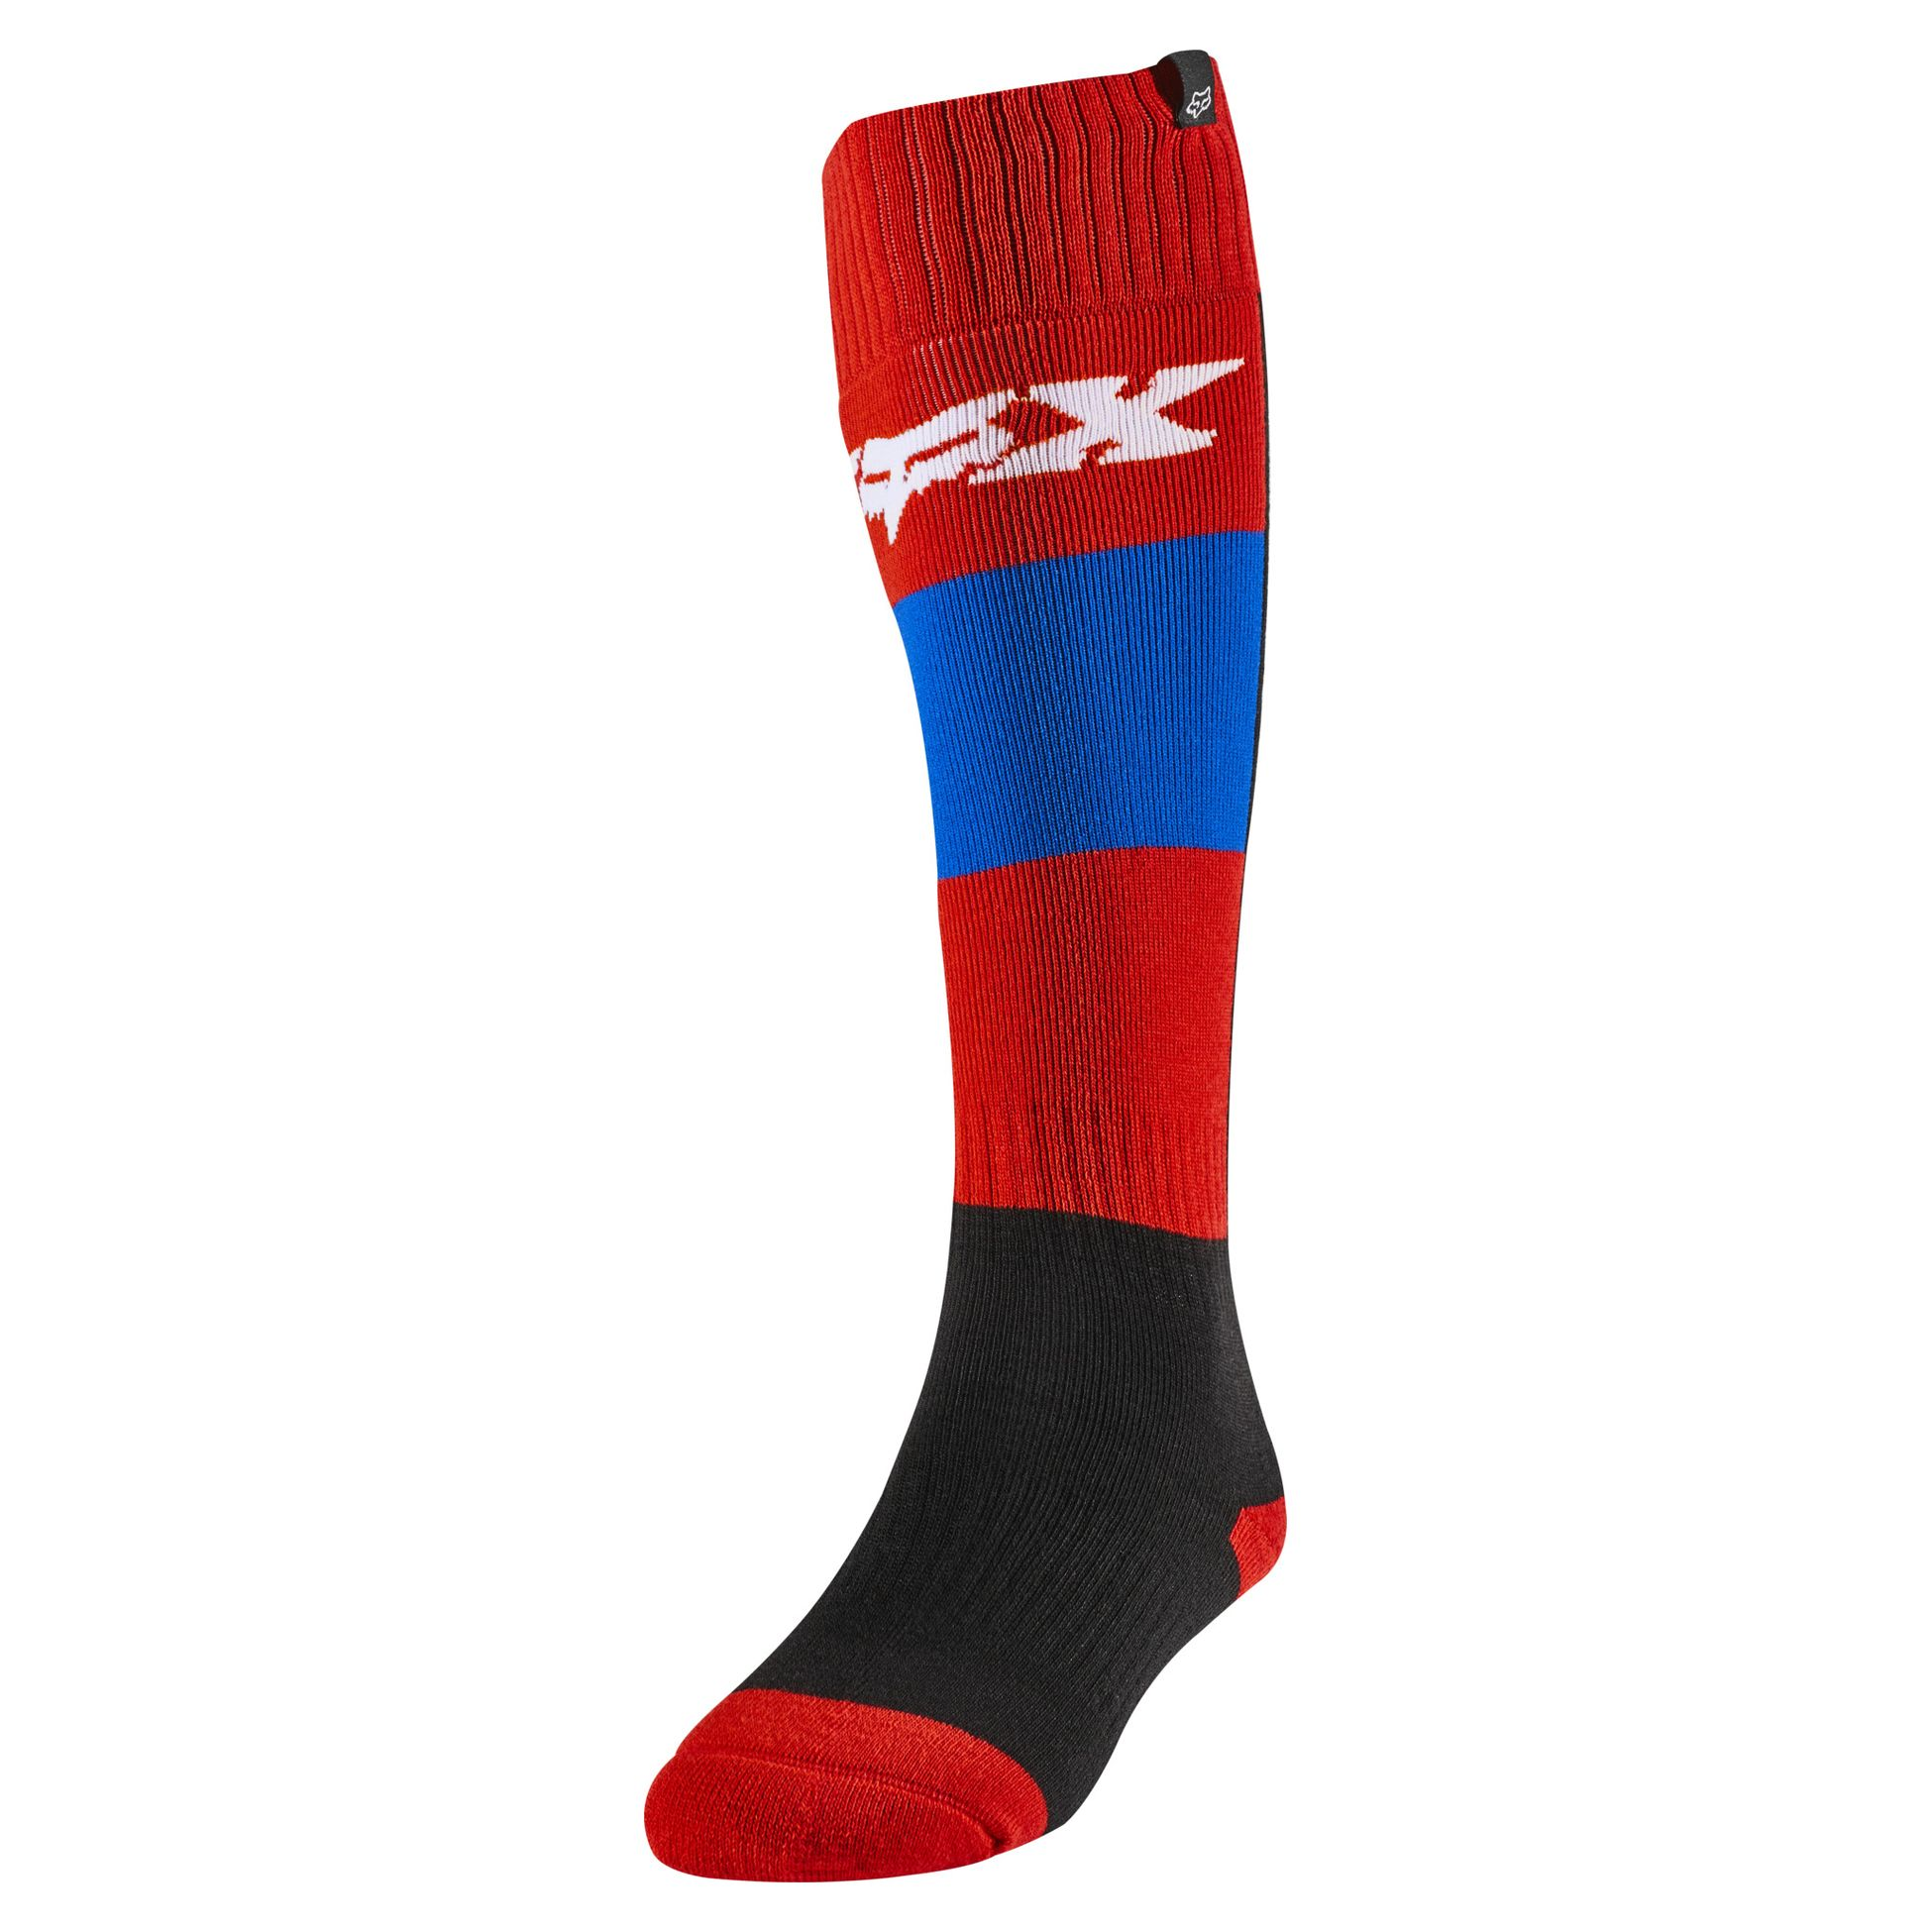 Socks from Dirtbikebitz